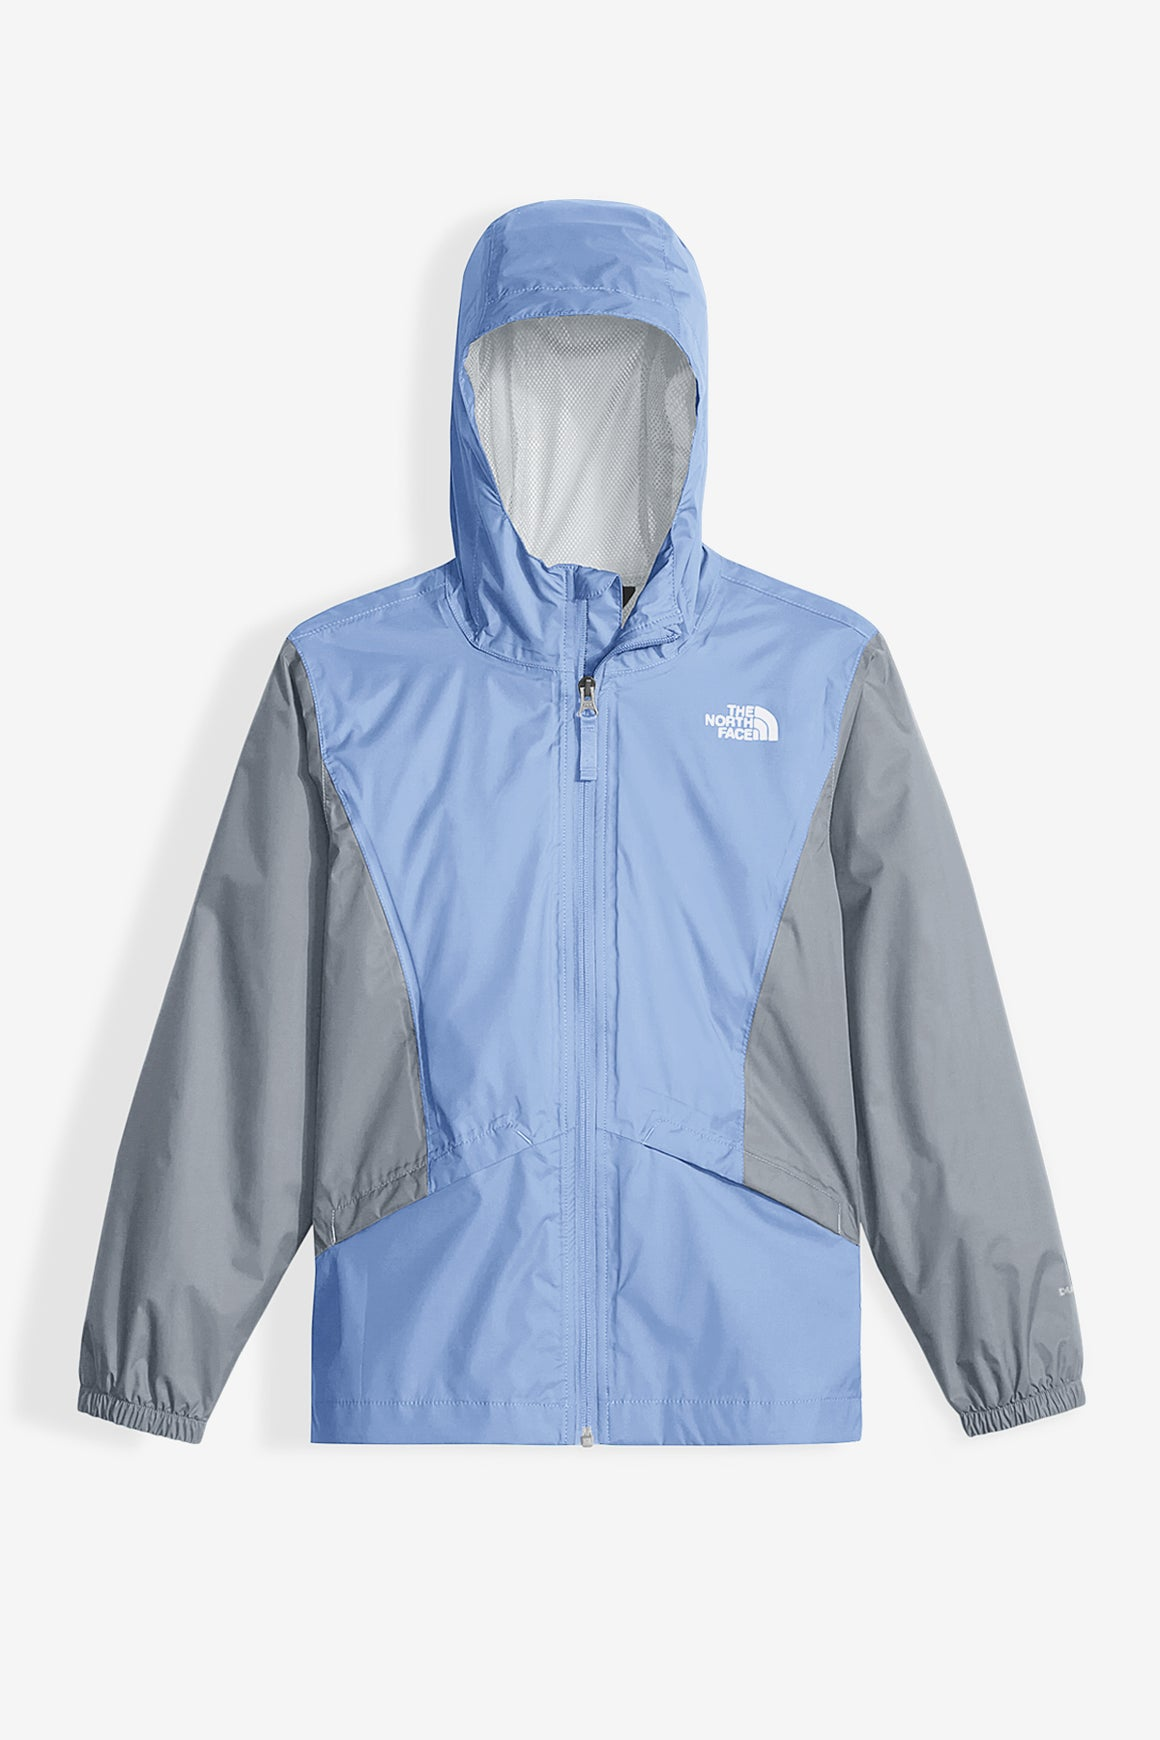 The North Face Girls' Zipline Rain Jacket - Collar Blue